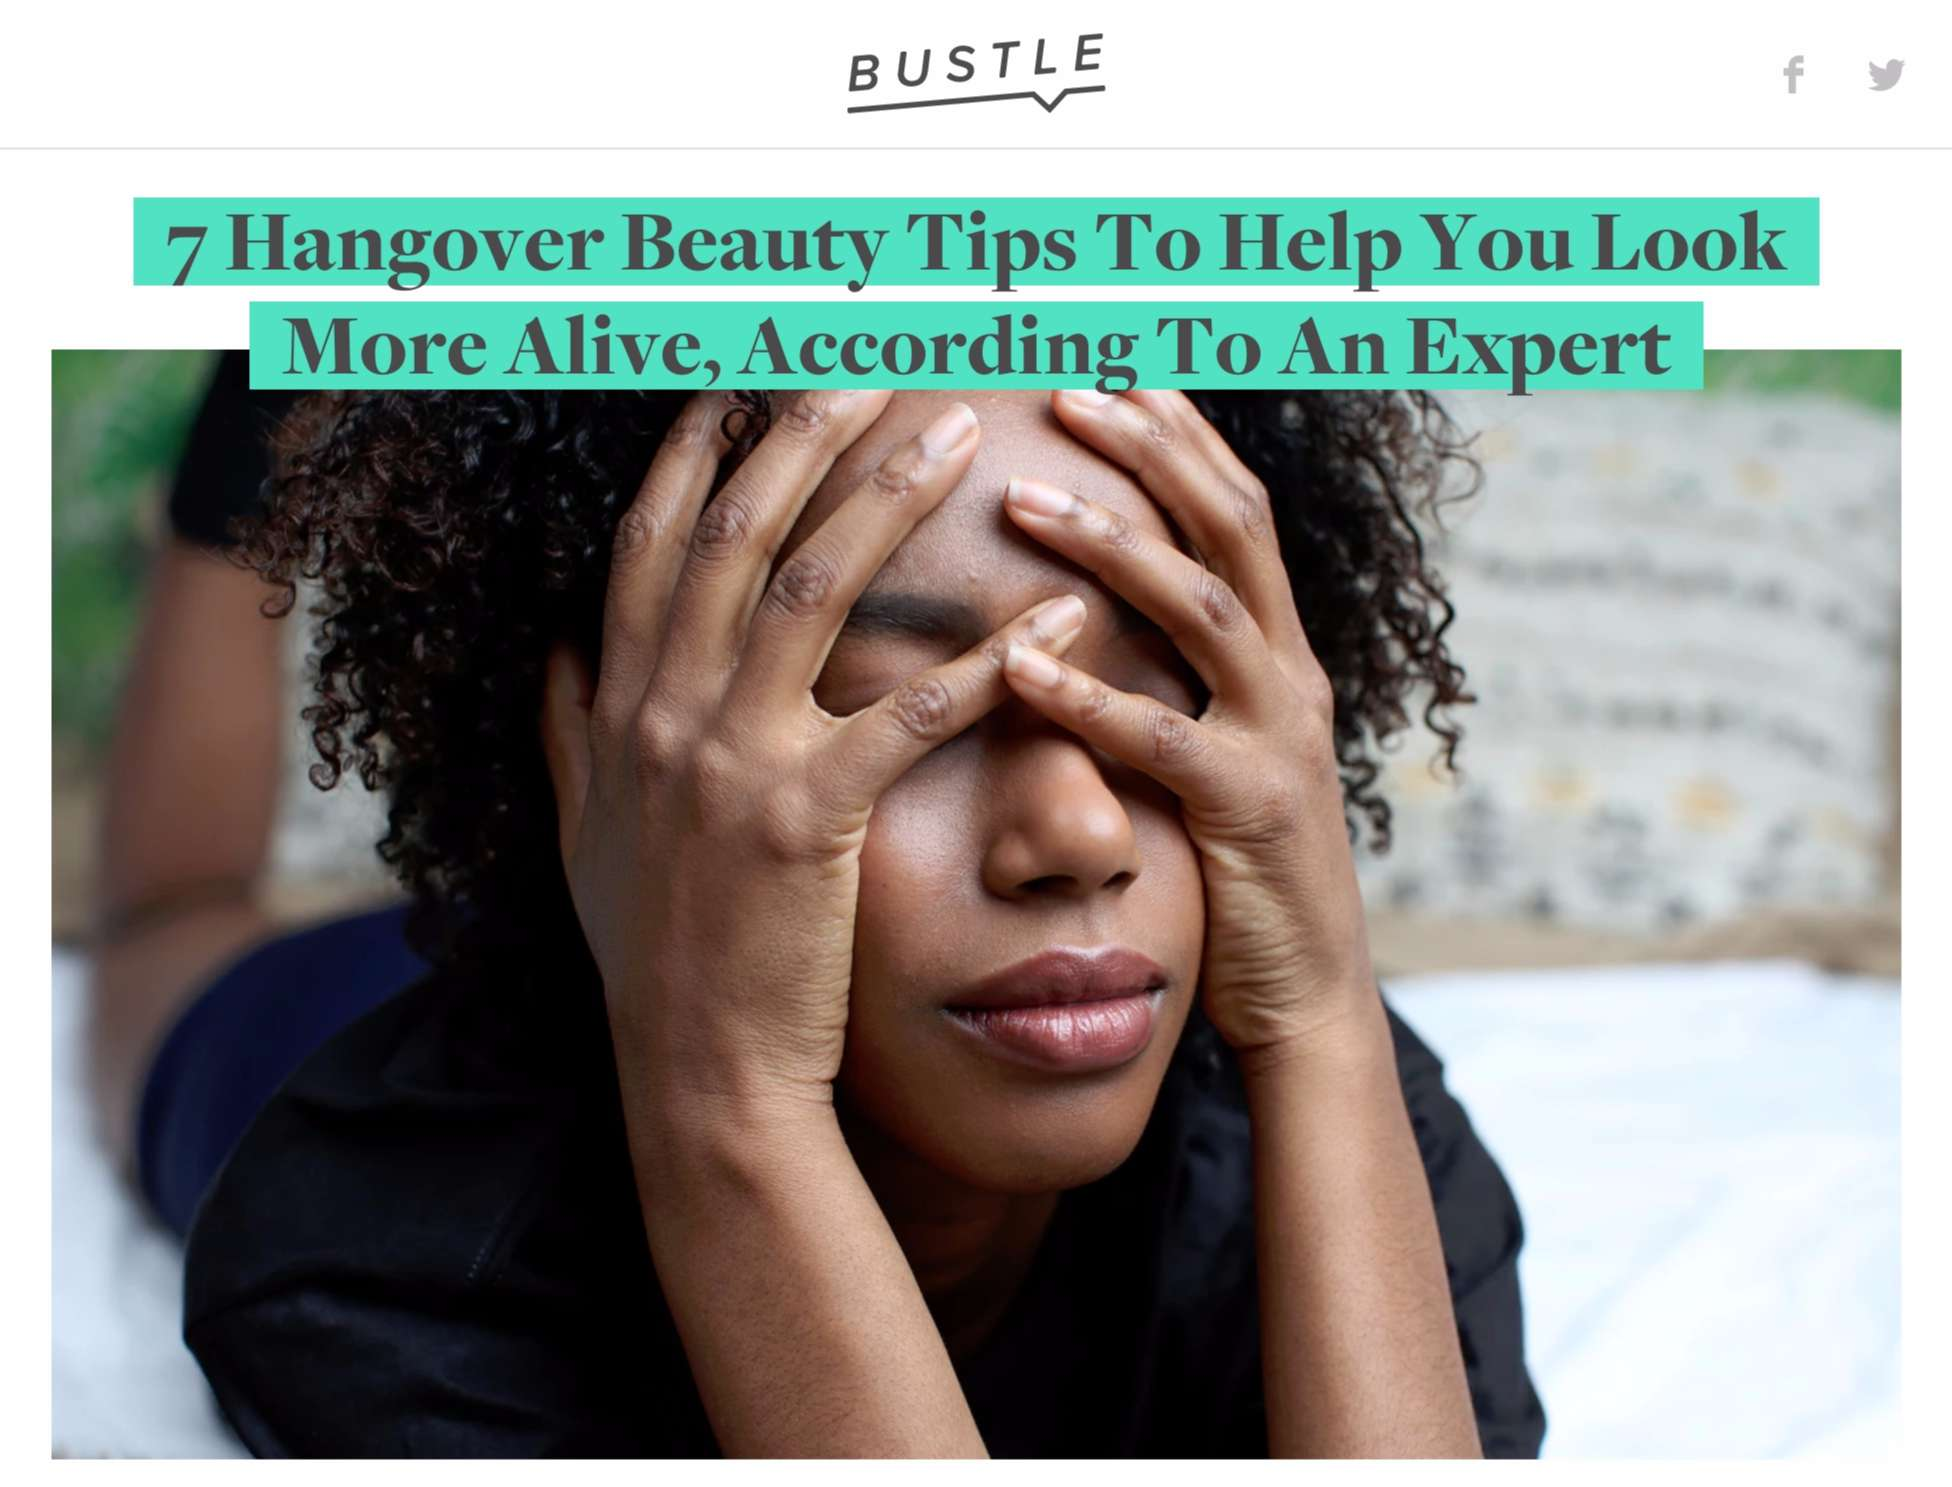 Bustle: Hangover Beauty Tips from Expert Esthetician Gregory Dylan